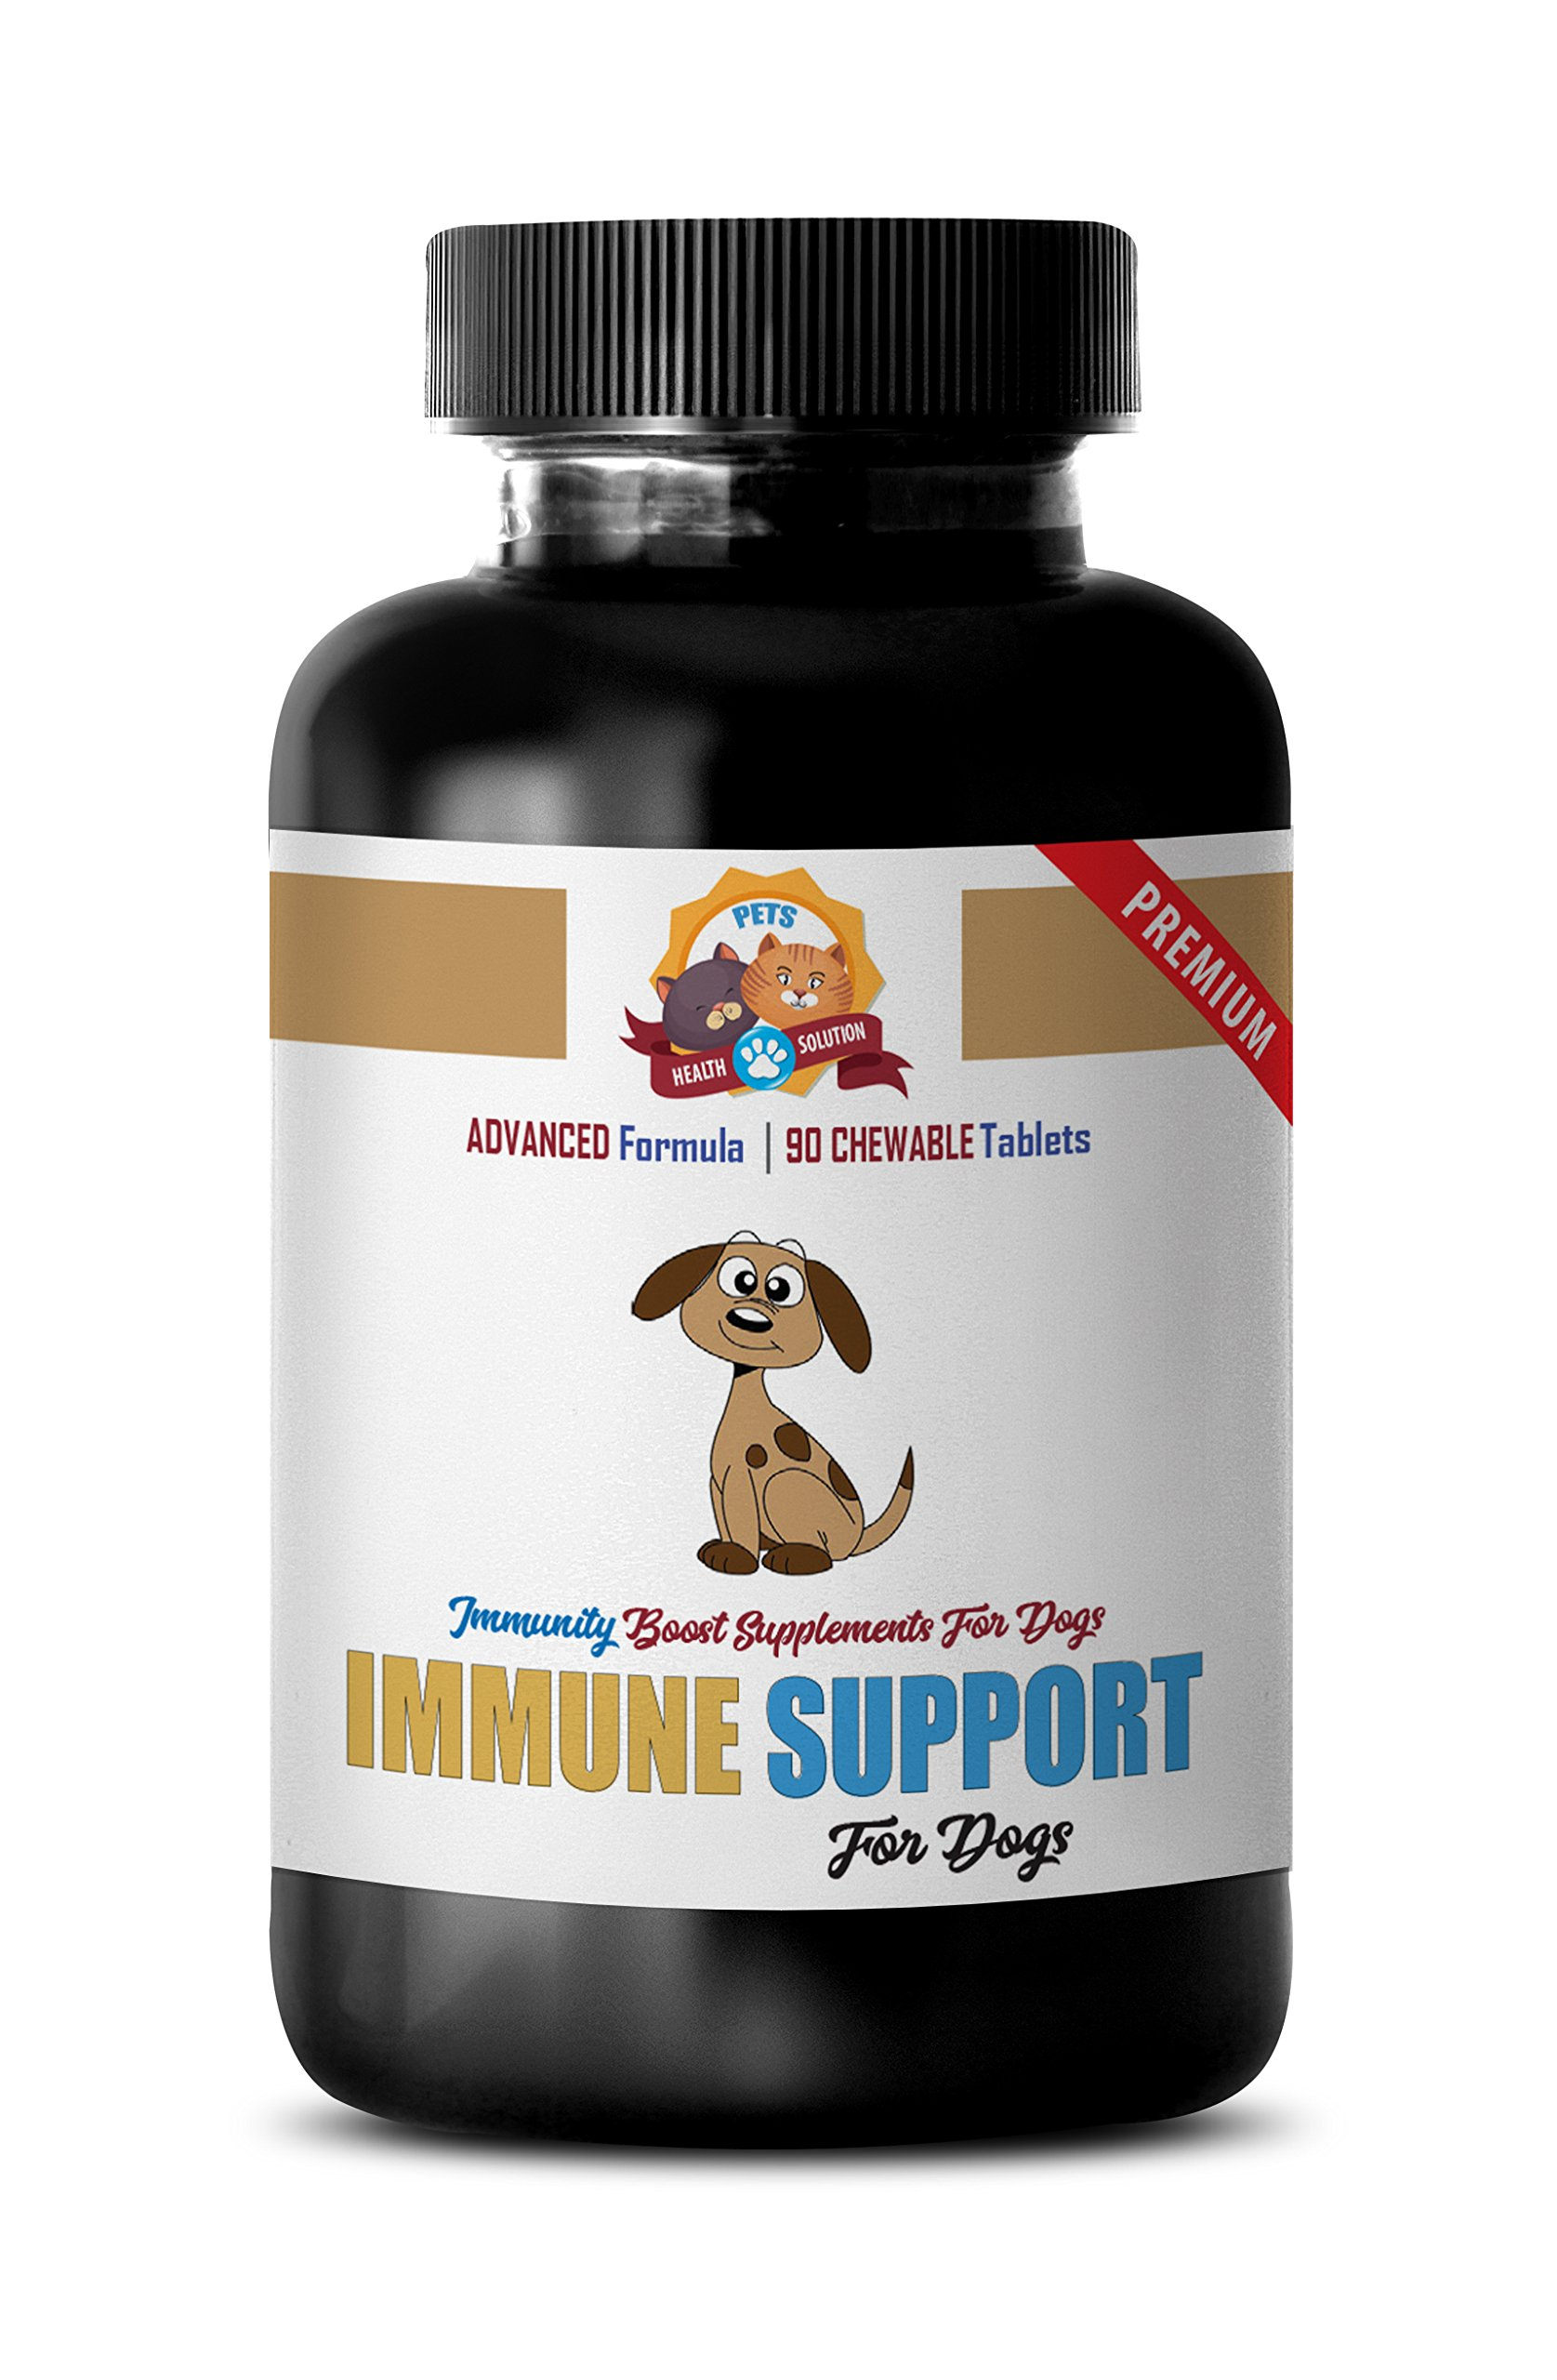 immune system booster for dogs - IMMUNE SUPPORT AND HEALTH - FOR DOGS TREATS - PREMIUM ADNVACED FORMULA - turkey tail for dogs - 90 Treats (1 Bottle)